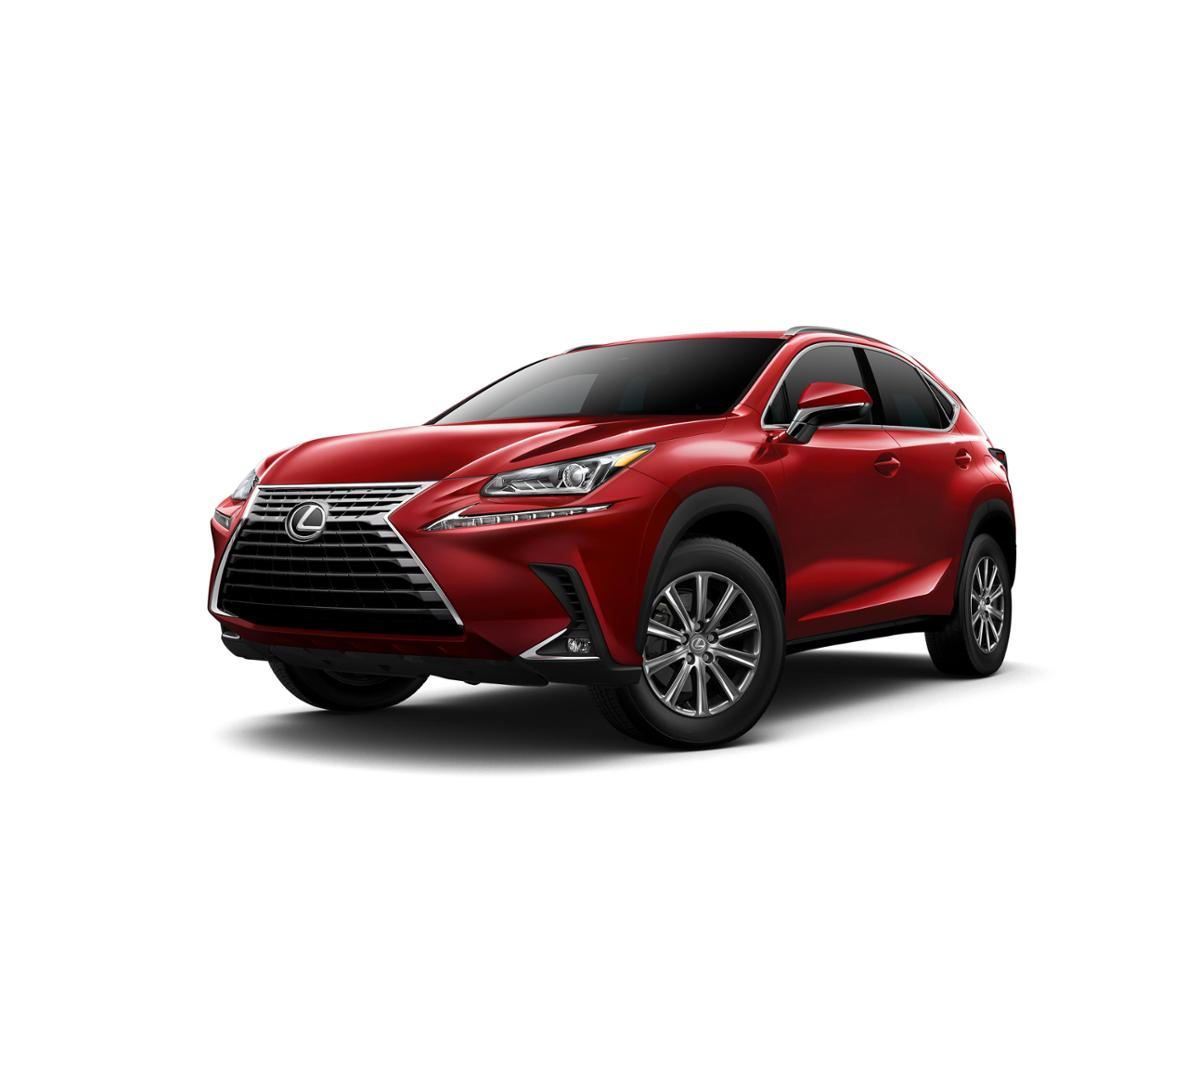 2018 Lexus NX 300 Vehicle Photo in Mission Viejo, CA 92692